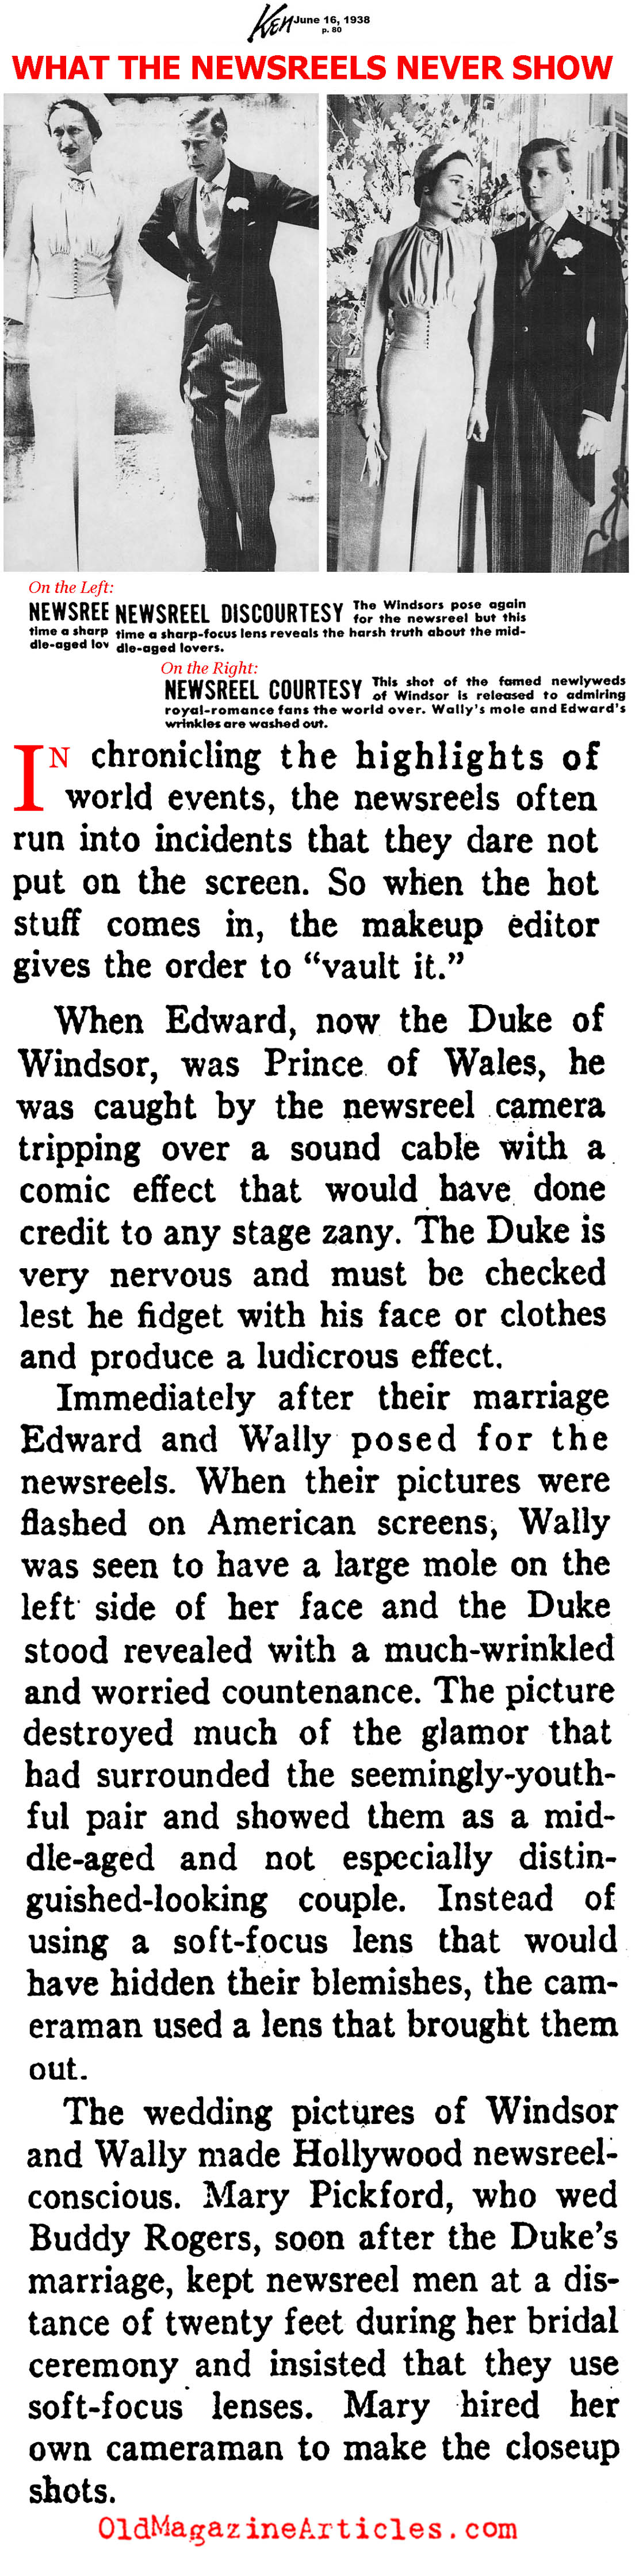 Re-Touching the Pictures of the Duke and Duchess of Windsor <BR>(Ken Magazine, 1938)